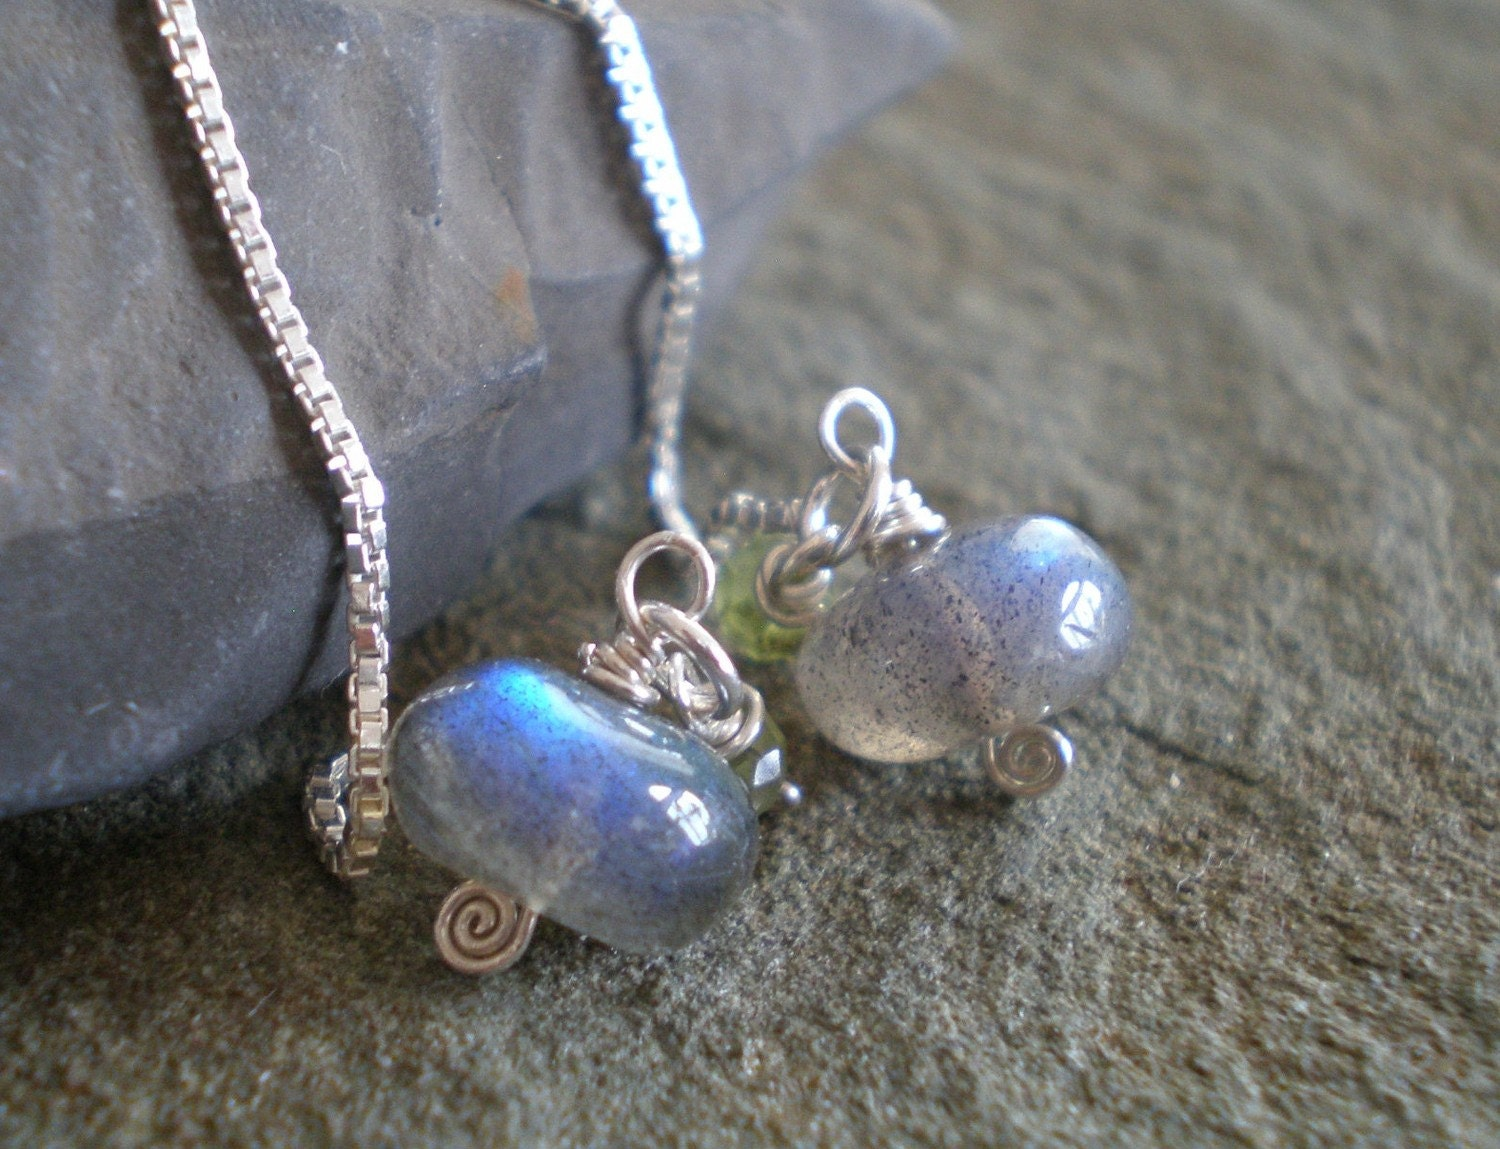 Storm Earrings- Labradorite, Peridot Ear Threaders in Sterling silver